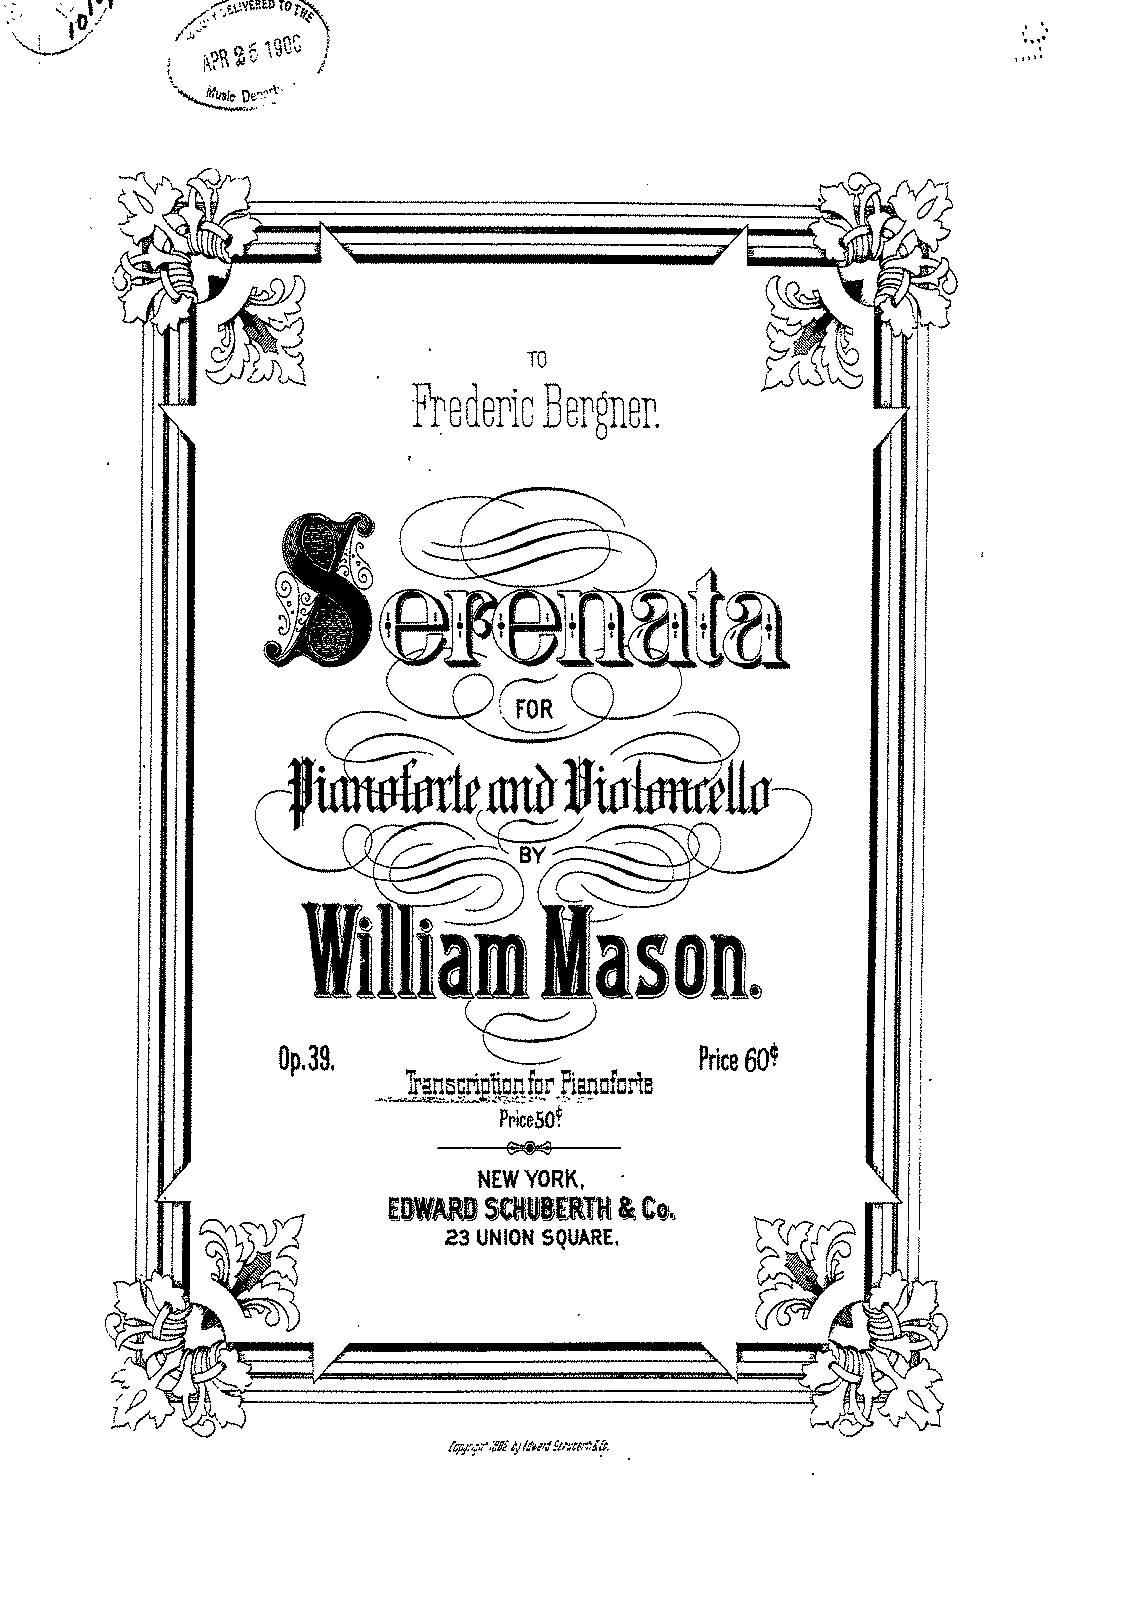 Mason, W. - Op.39 - Sereneta for Piano and Cello.pdf